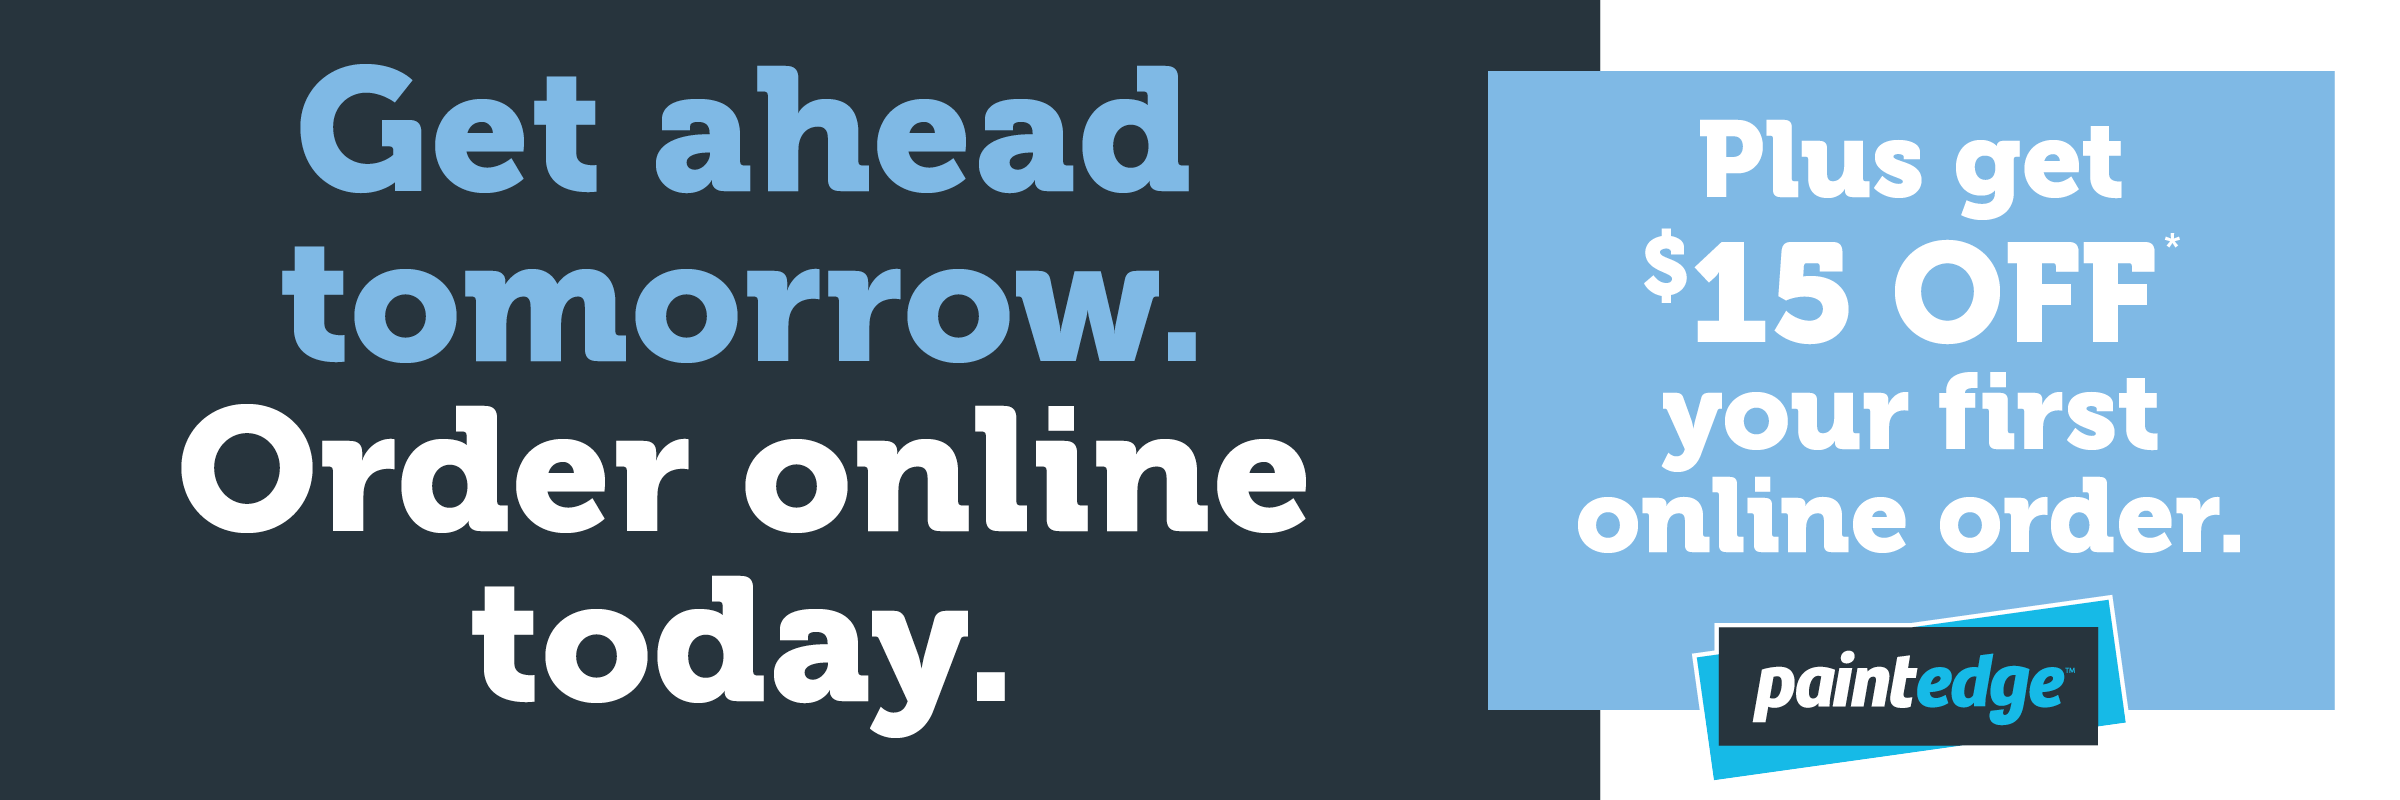 Get ahead tomorrow. Order online today.